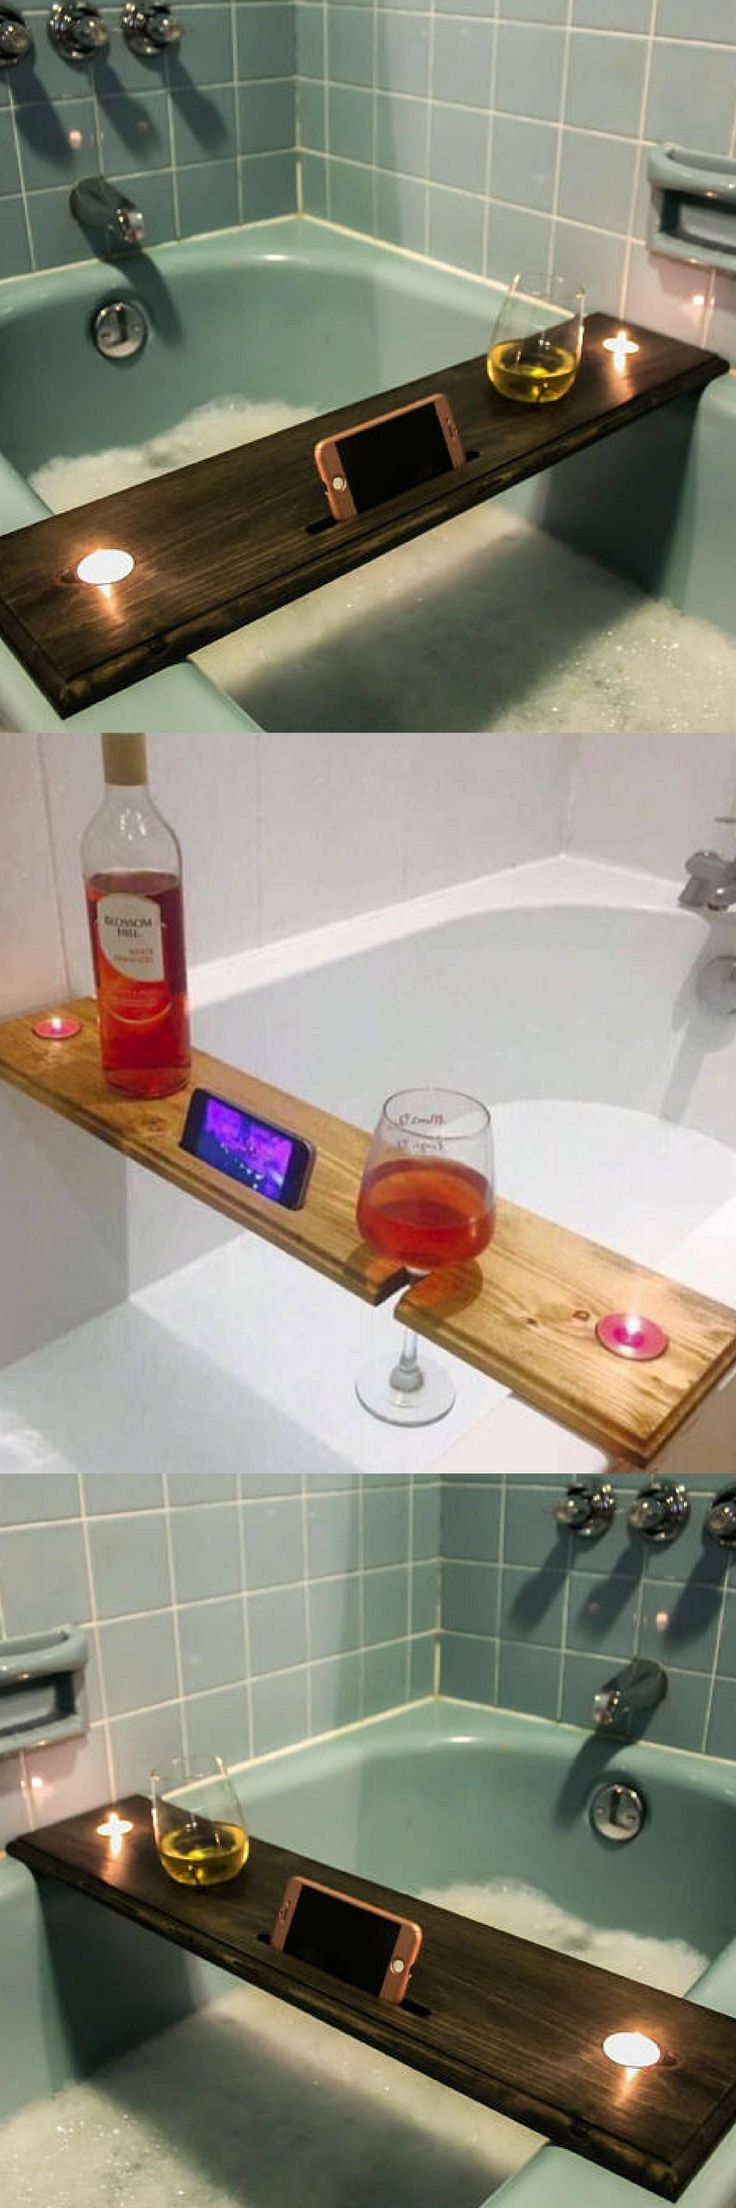 "Sit back and relax in your warm bubble bath with this bath caddy that  can hold a glass of wine, bottle, or a can of your favorite beverage!   This  caddy comes equipped with 2 tea light candle holders (tea light candles  included), a slot to place your phone/iPad/kindle, and a 2 3/4""  designated spot to place a stemless glass, can, or bottle! Wooden Bathtub Table/Caddy/Tray That Holds Wine, Beer, Drink, Candles, and Phone/iPad/Kindle #valentinesideas #ad #bathroomideas #bathroomdecor…"